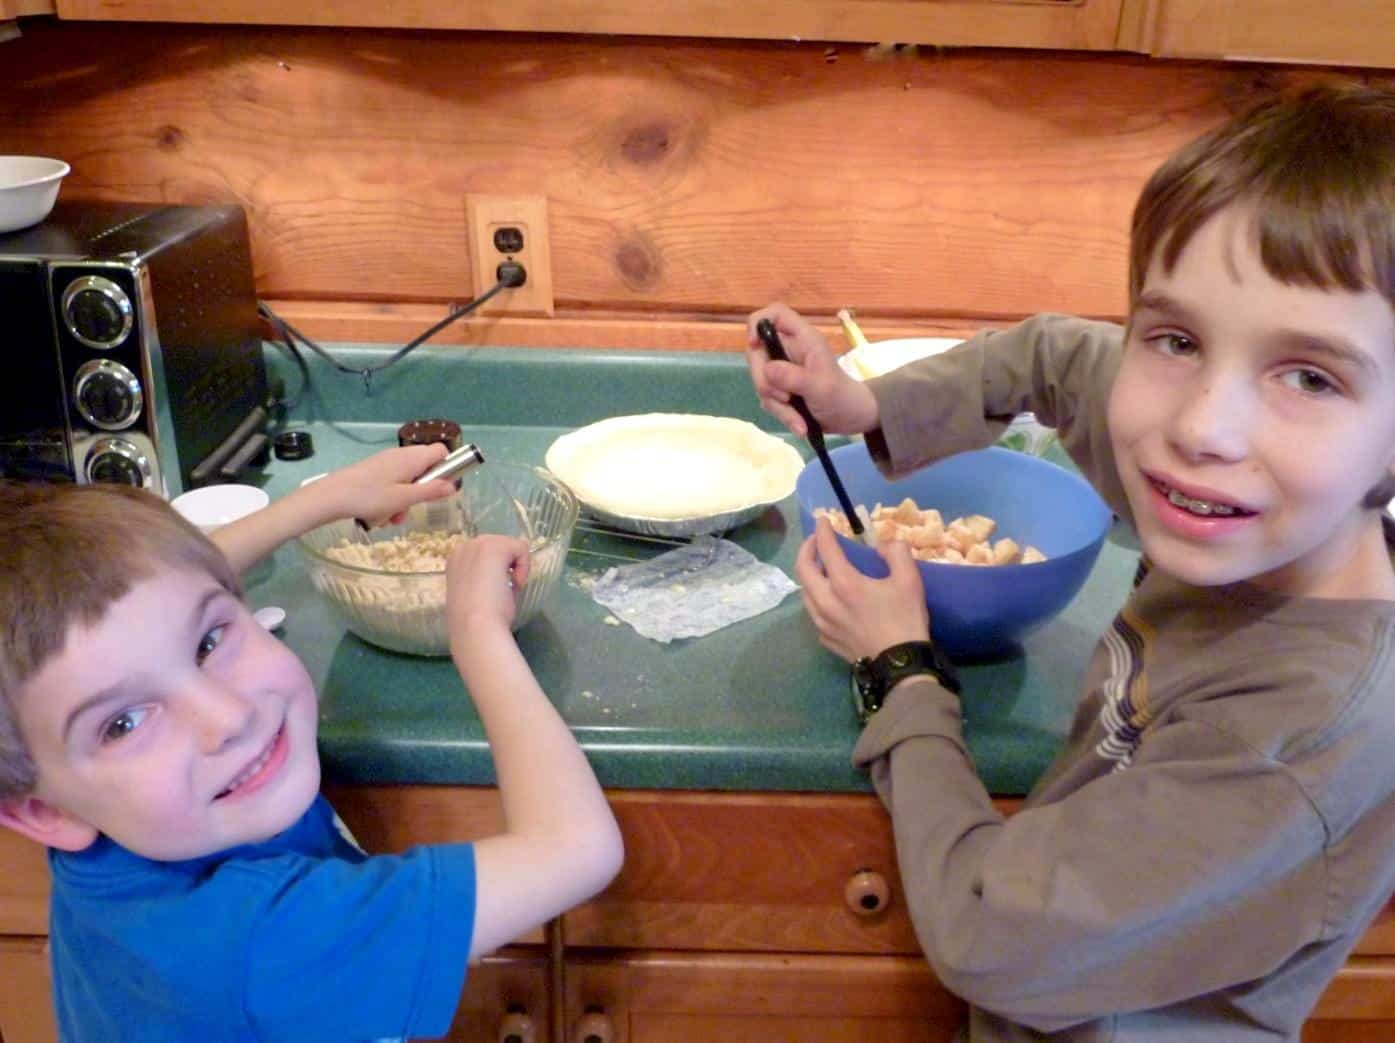 Raising Masculine Boys That Know How & Aren't Afraid To Cook. helping Mom cook